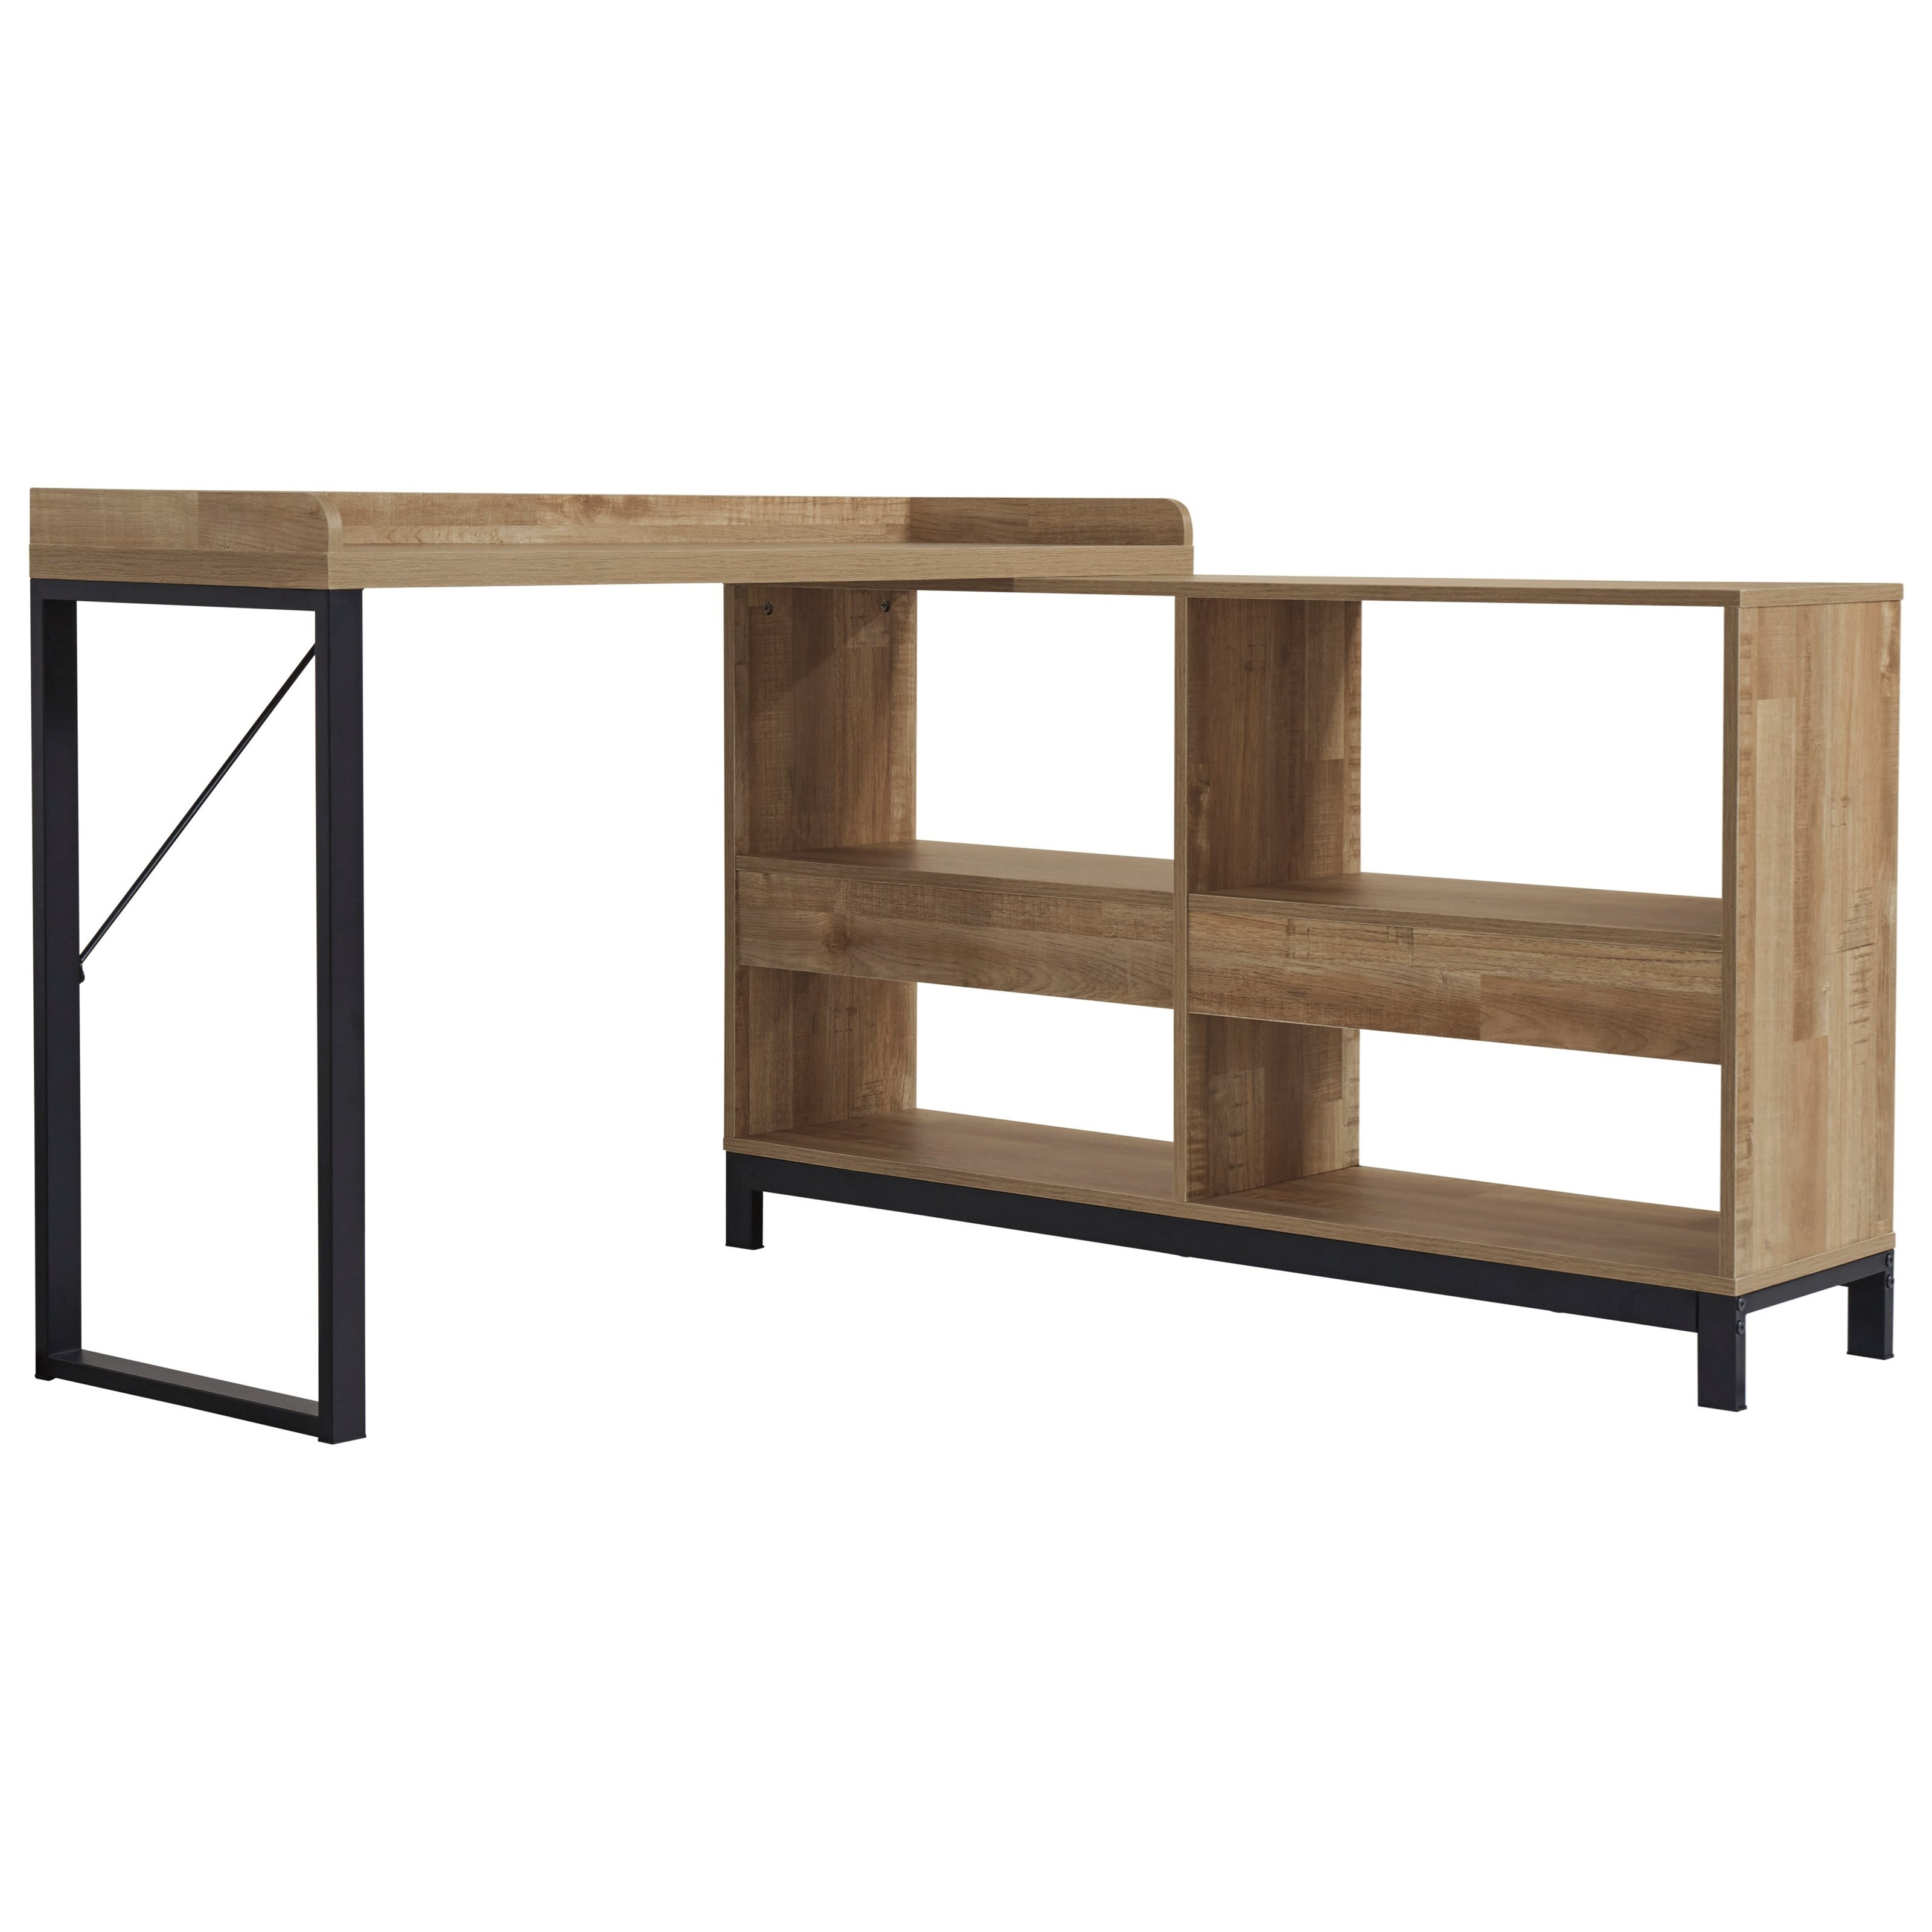 Gerdanet L-Shaped Desk by Signature Design by Ashley at Zak's Warehouse Clearance Center